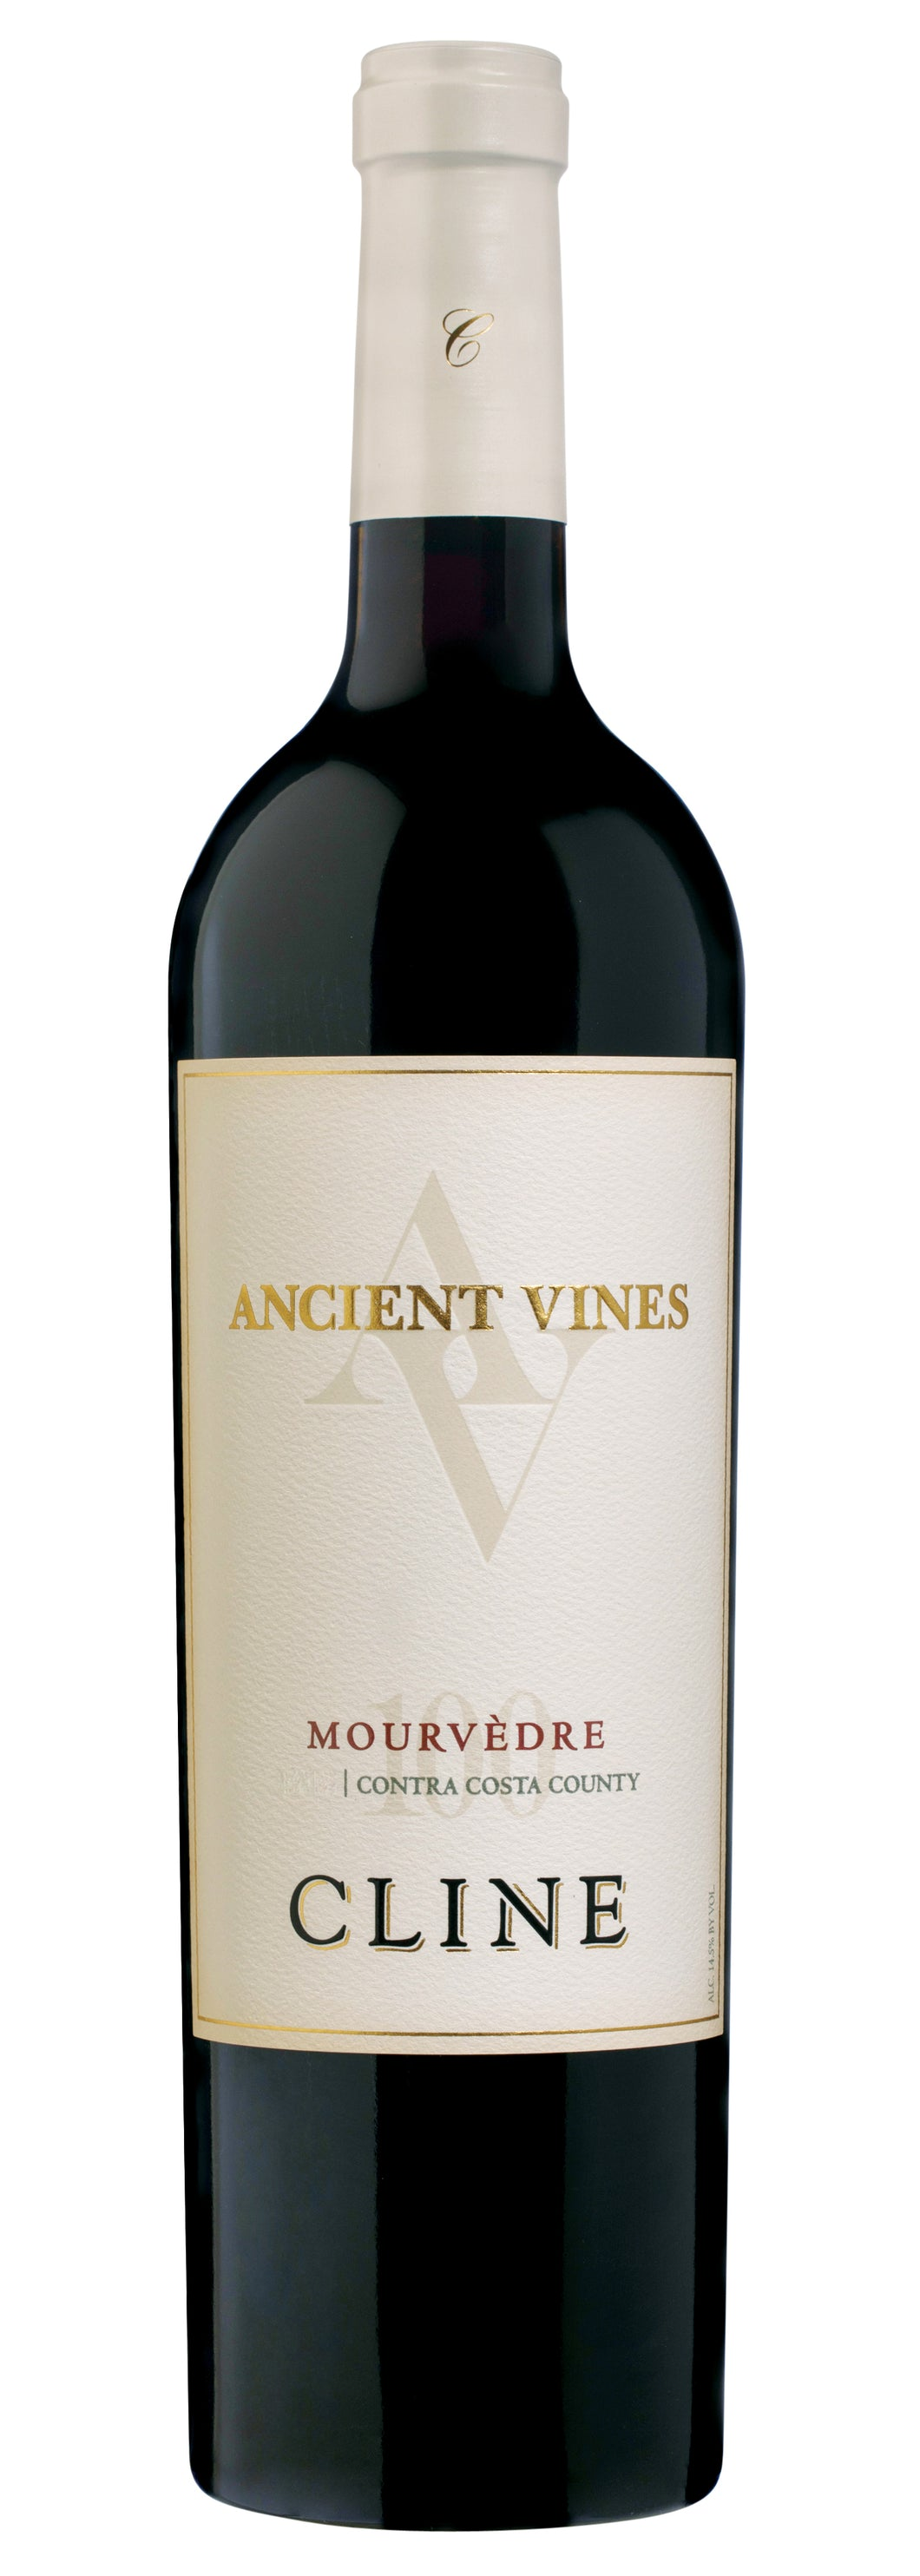 CLINE MOURVEDRE ANCIENT VINES - Vino Wines